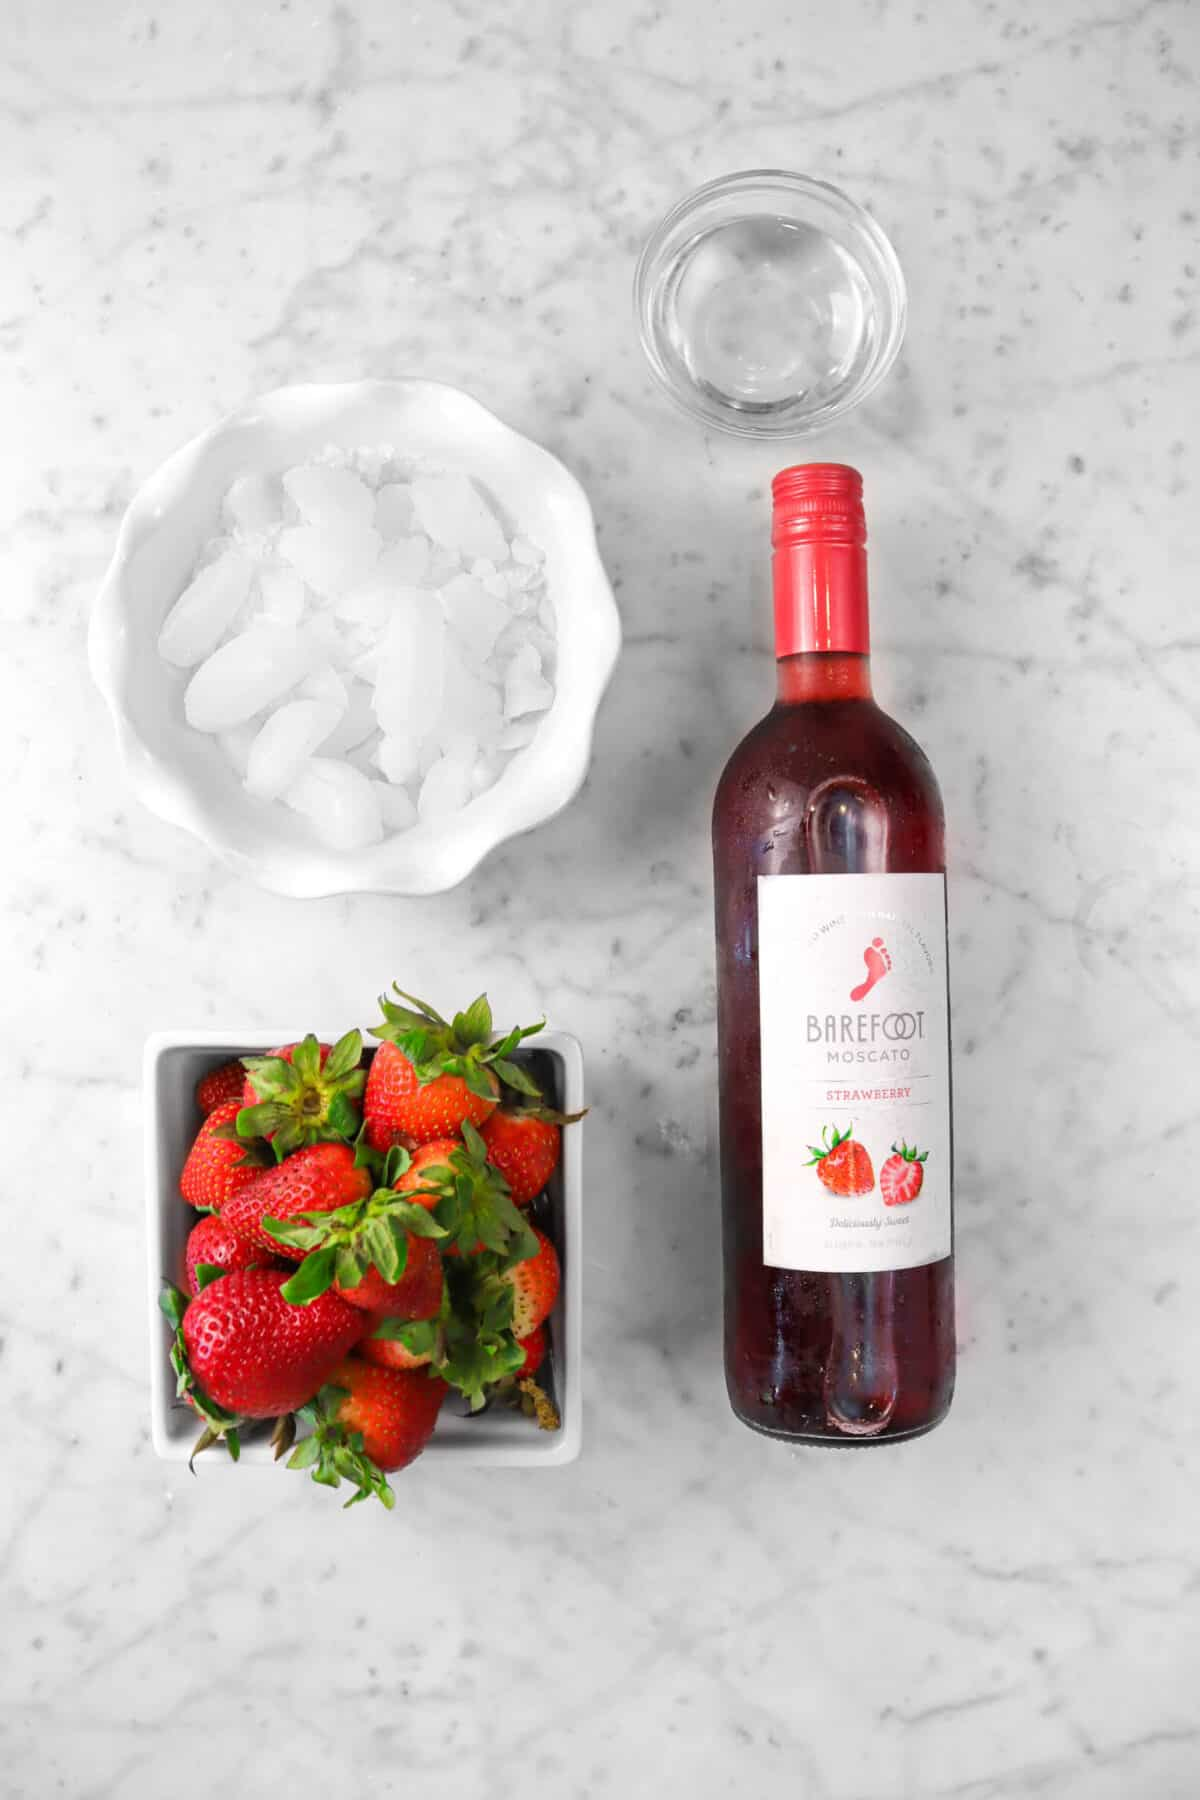 a bottle of wine, strawberries, ice, and simple syrup on a marble counter